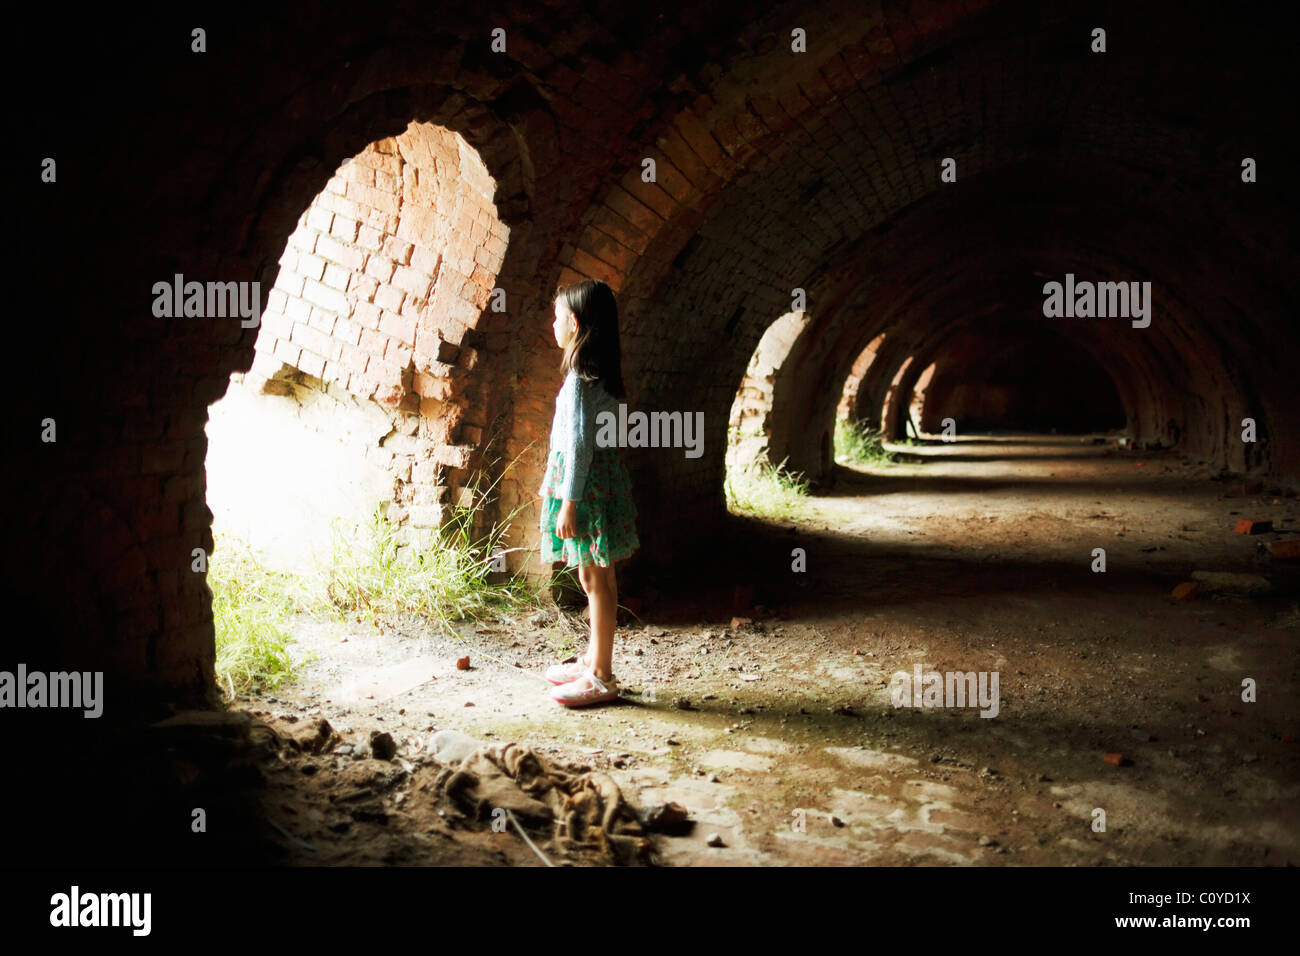 Girl stands in arches of derelict brick oven - Stock Image